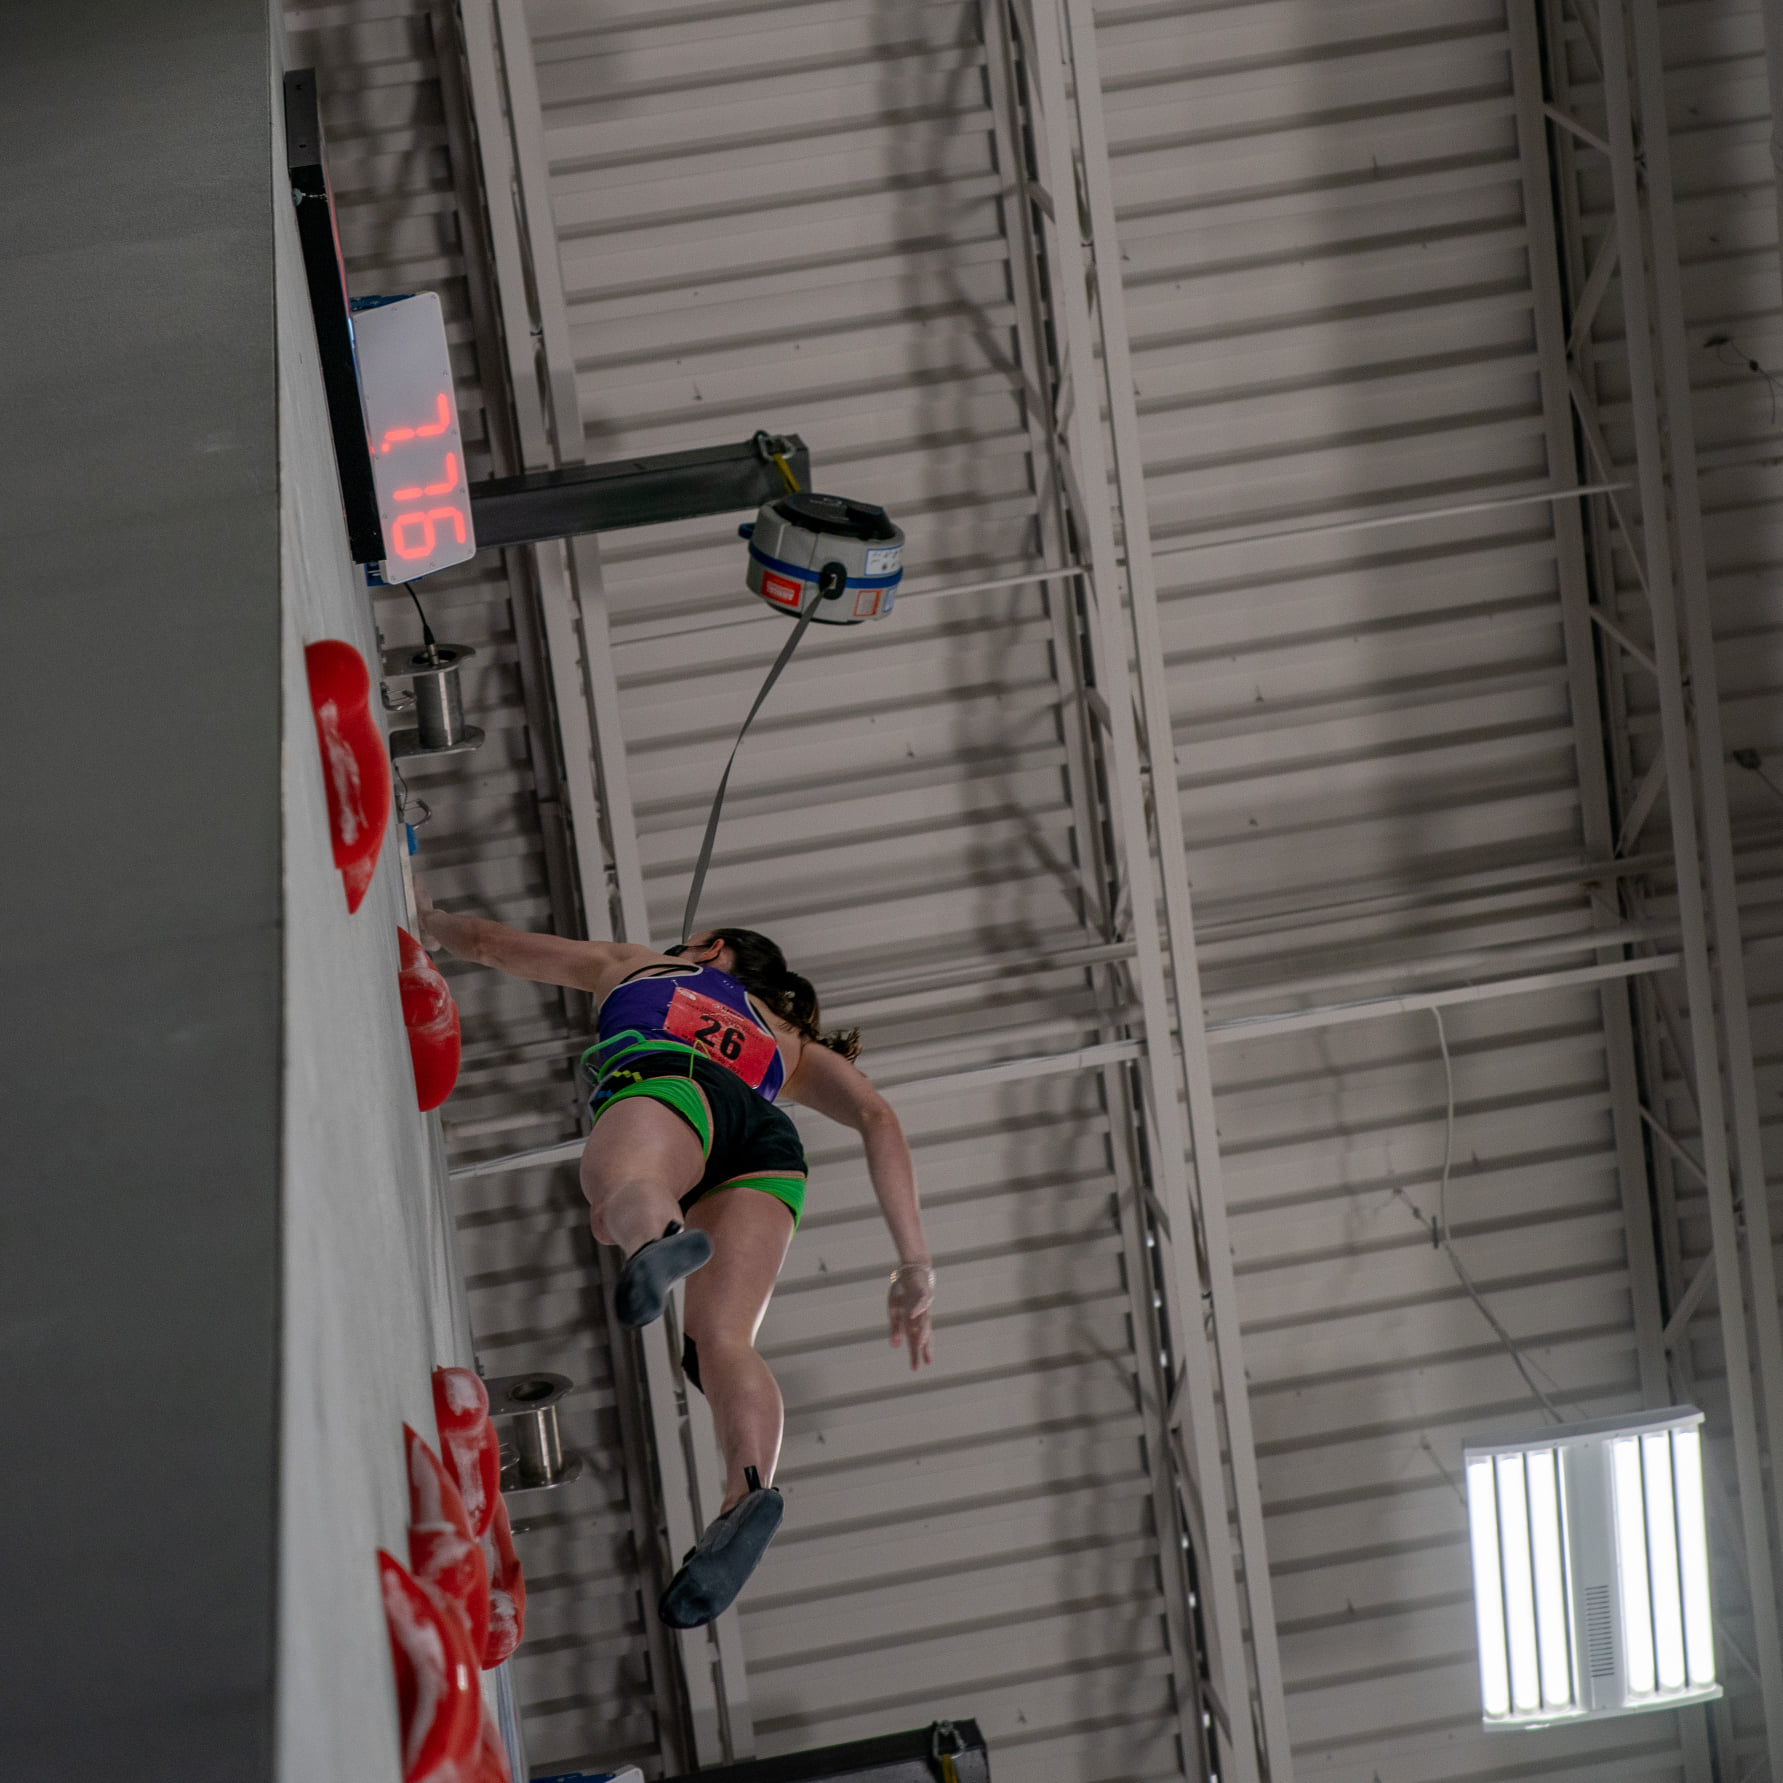 Female competitor at the top of the climbing wall